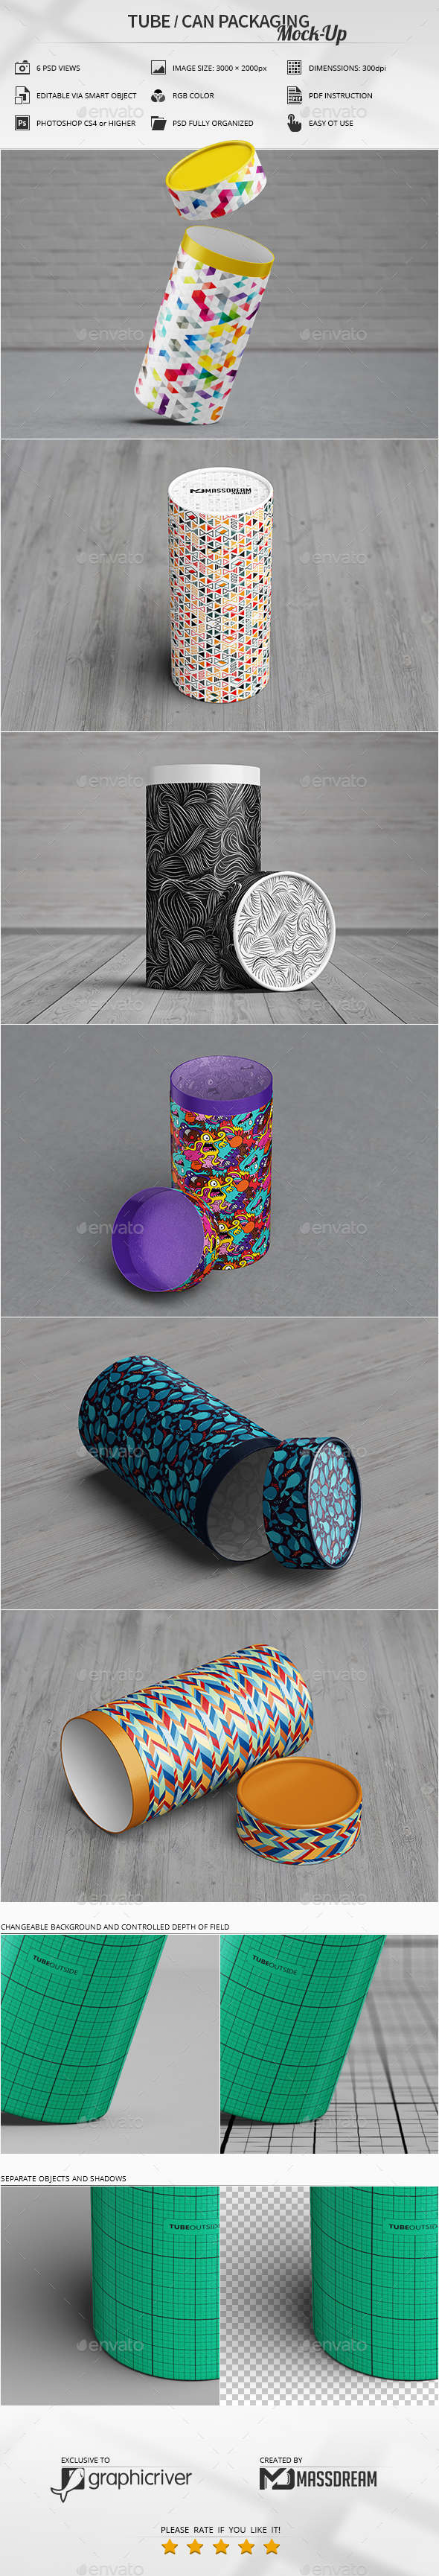 Tube / Can Packaging Mock-Up - Miscellaneous Packaging